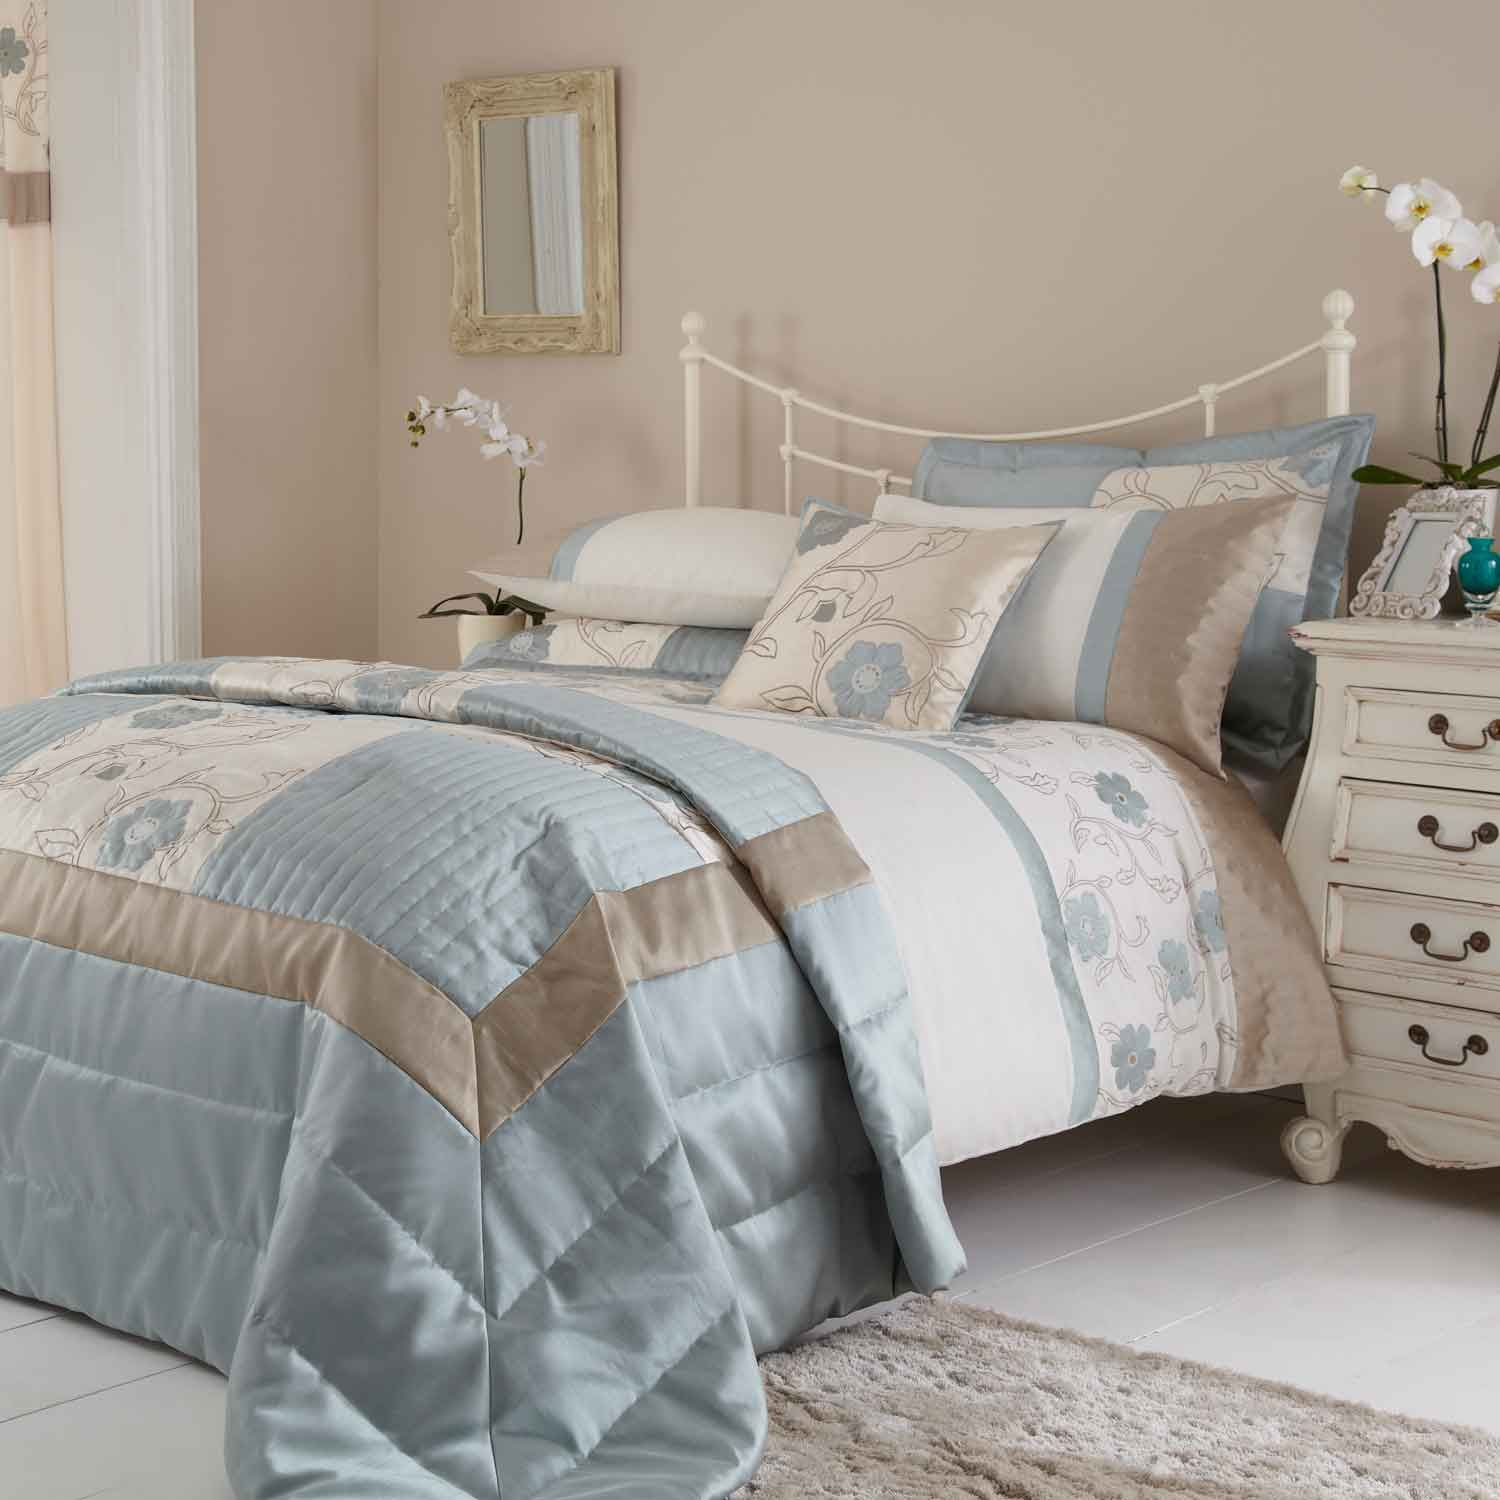 Duck Egg Blue And Brown Bedding For Bedroom Decorating Ideas